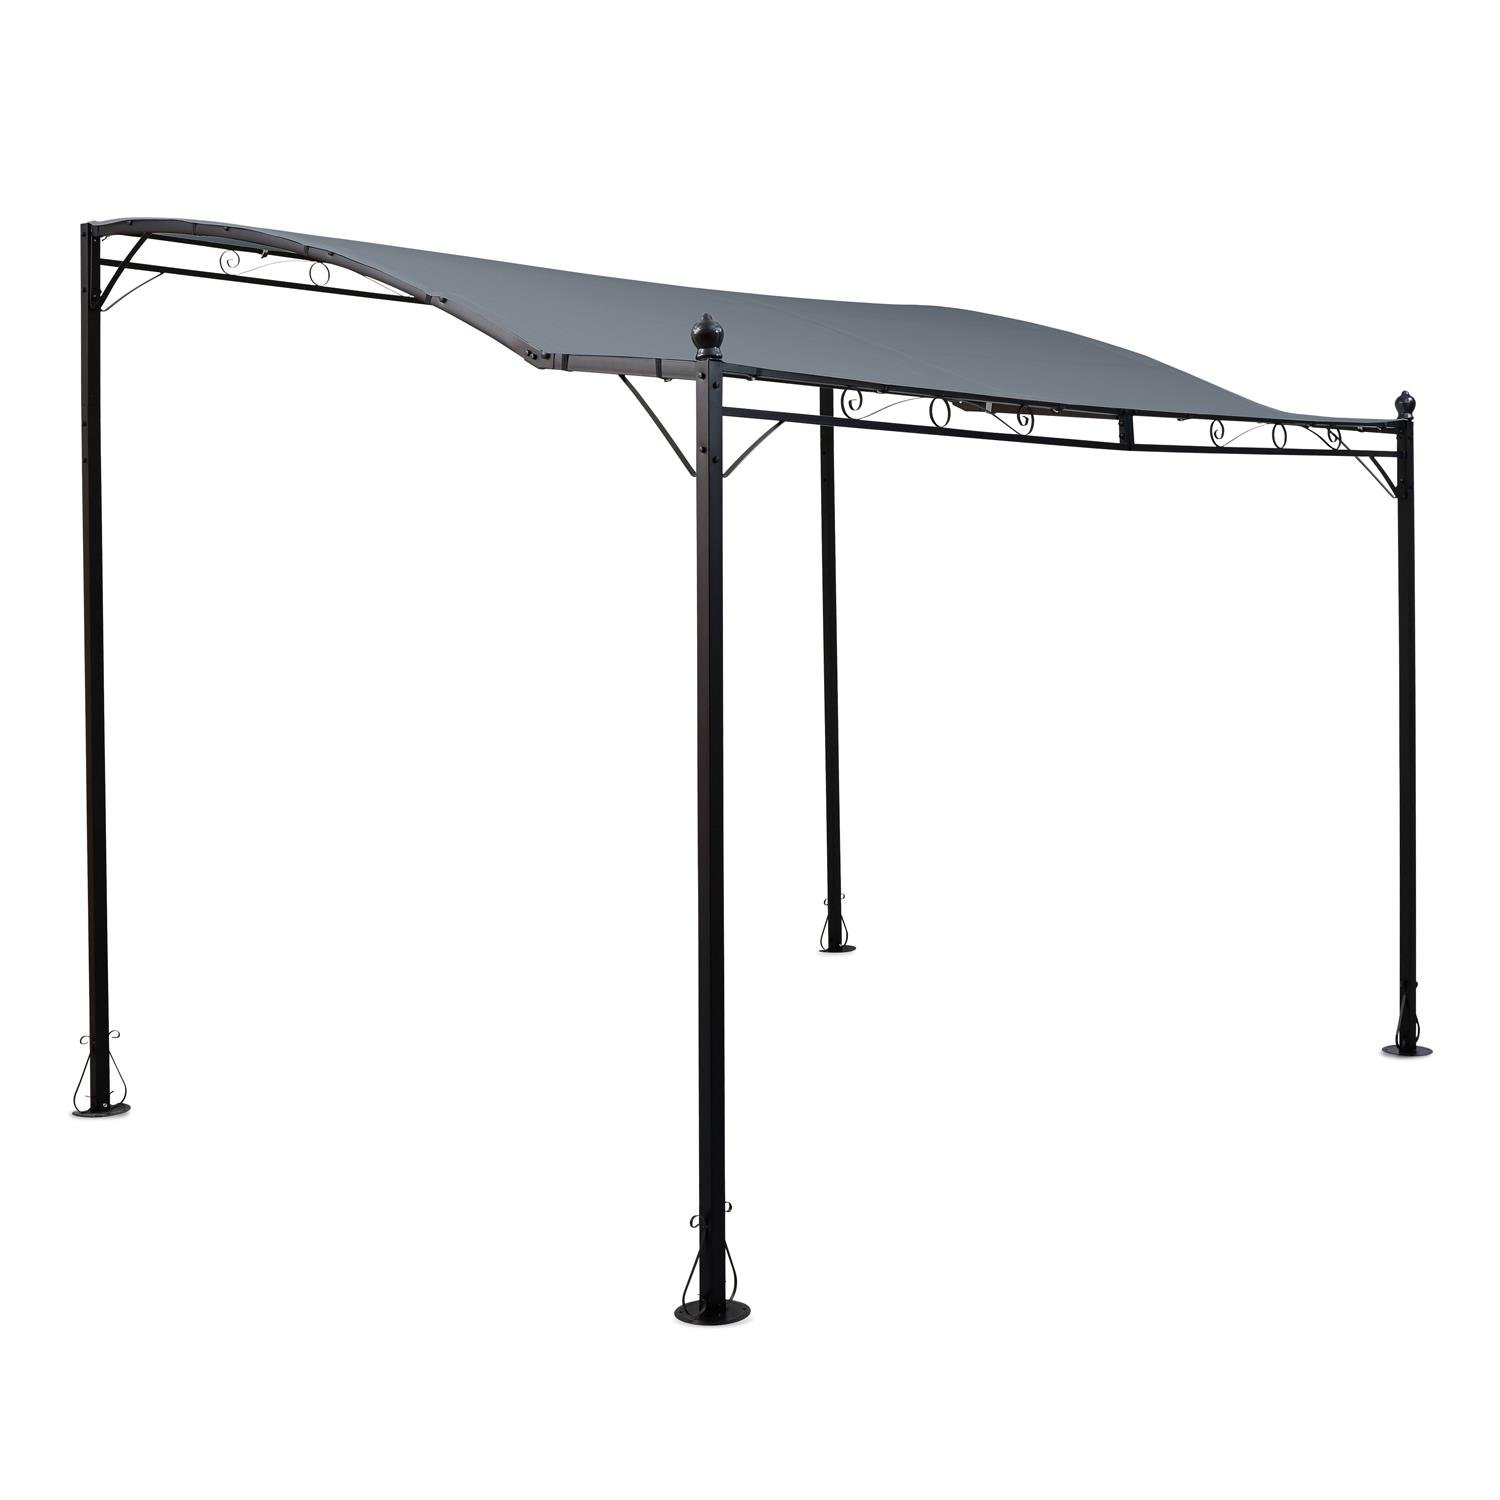 Blumfeldt Allure Pergola Canopy Pavillon (300x250cm, Water-Resistant Polyester Cover with PU Coating, Ideal as Terrace Roof or Canoply) Light Beige